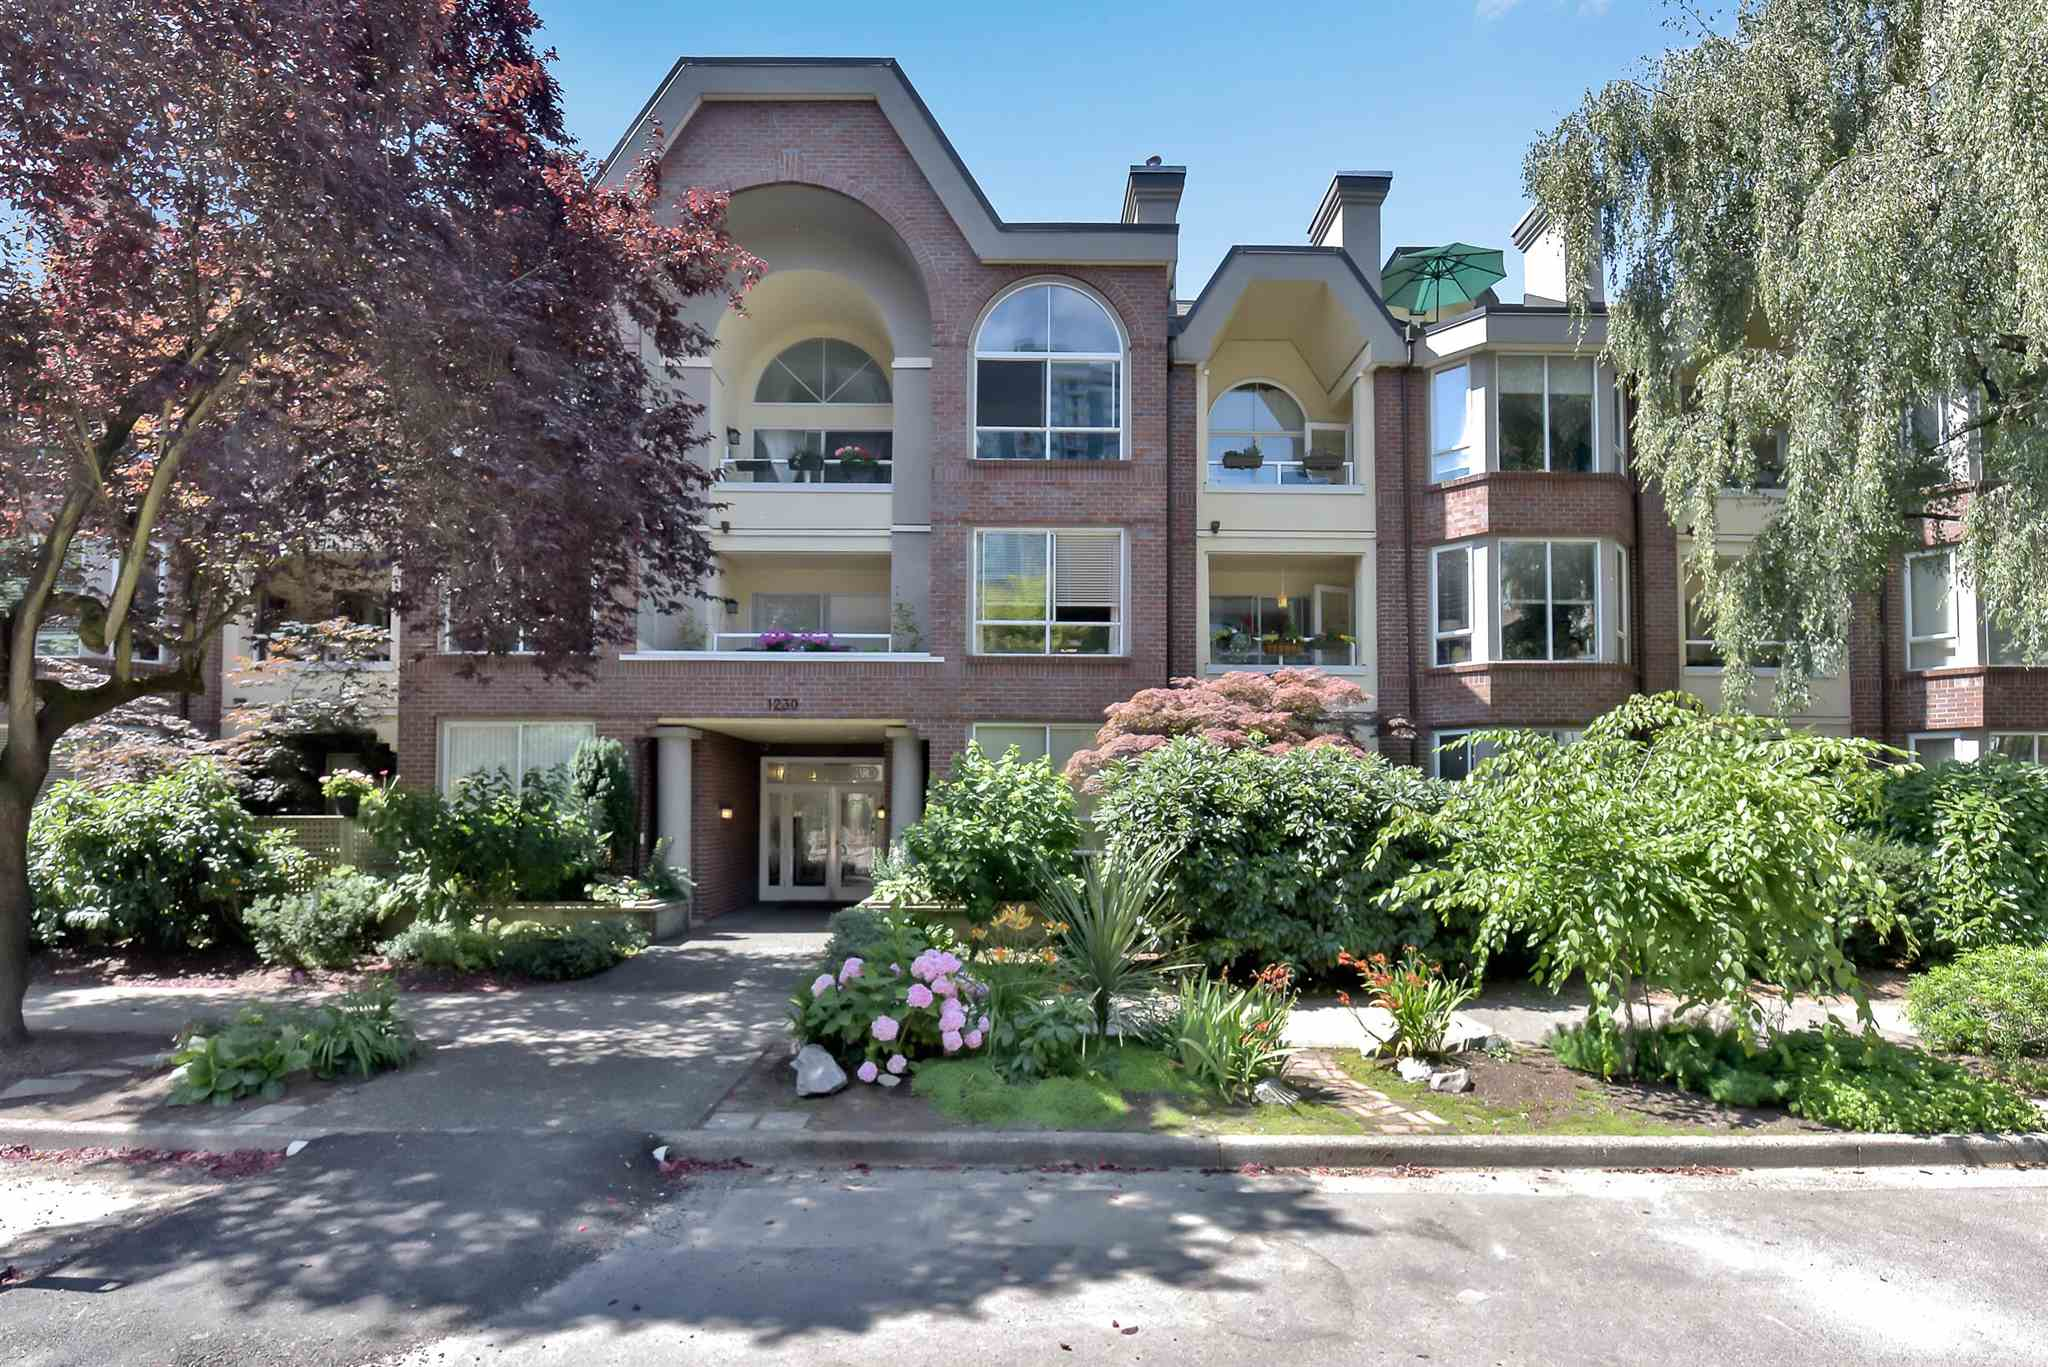 403 1230 HARO STREET - West End VW Apartment/Condo for sale, 2 Bedrooms (R2603271) - #1